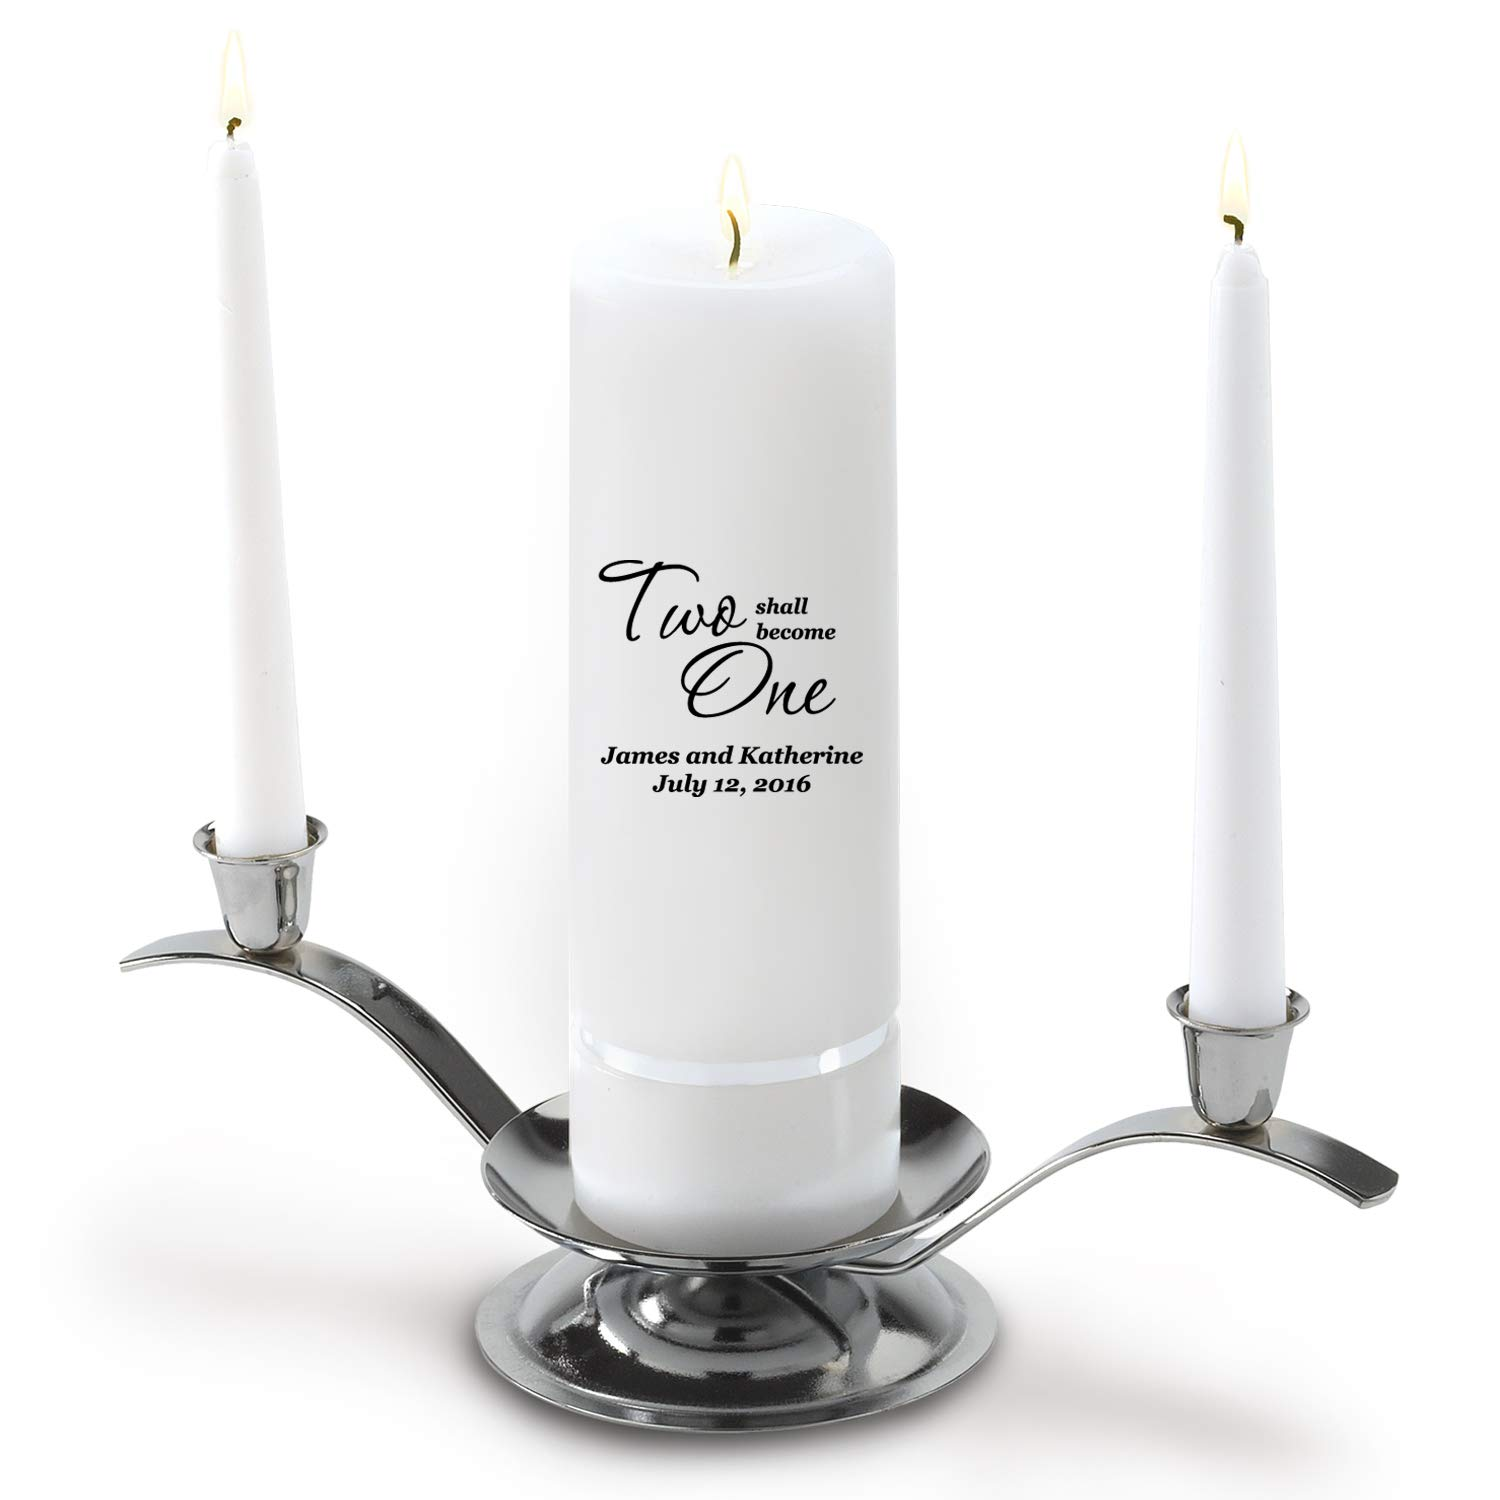 Personalized Wedding Unity Candle - Personalized Unity Candle Set - Two Shall Become One by A Gift Personalized